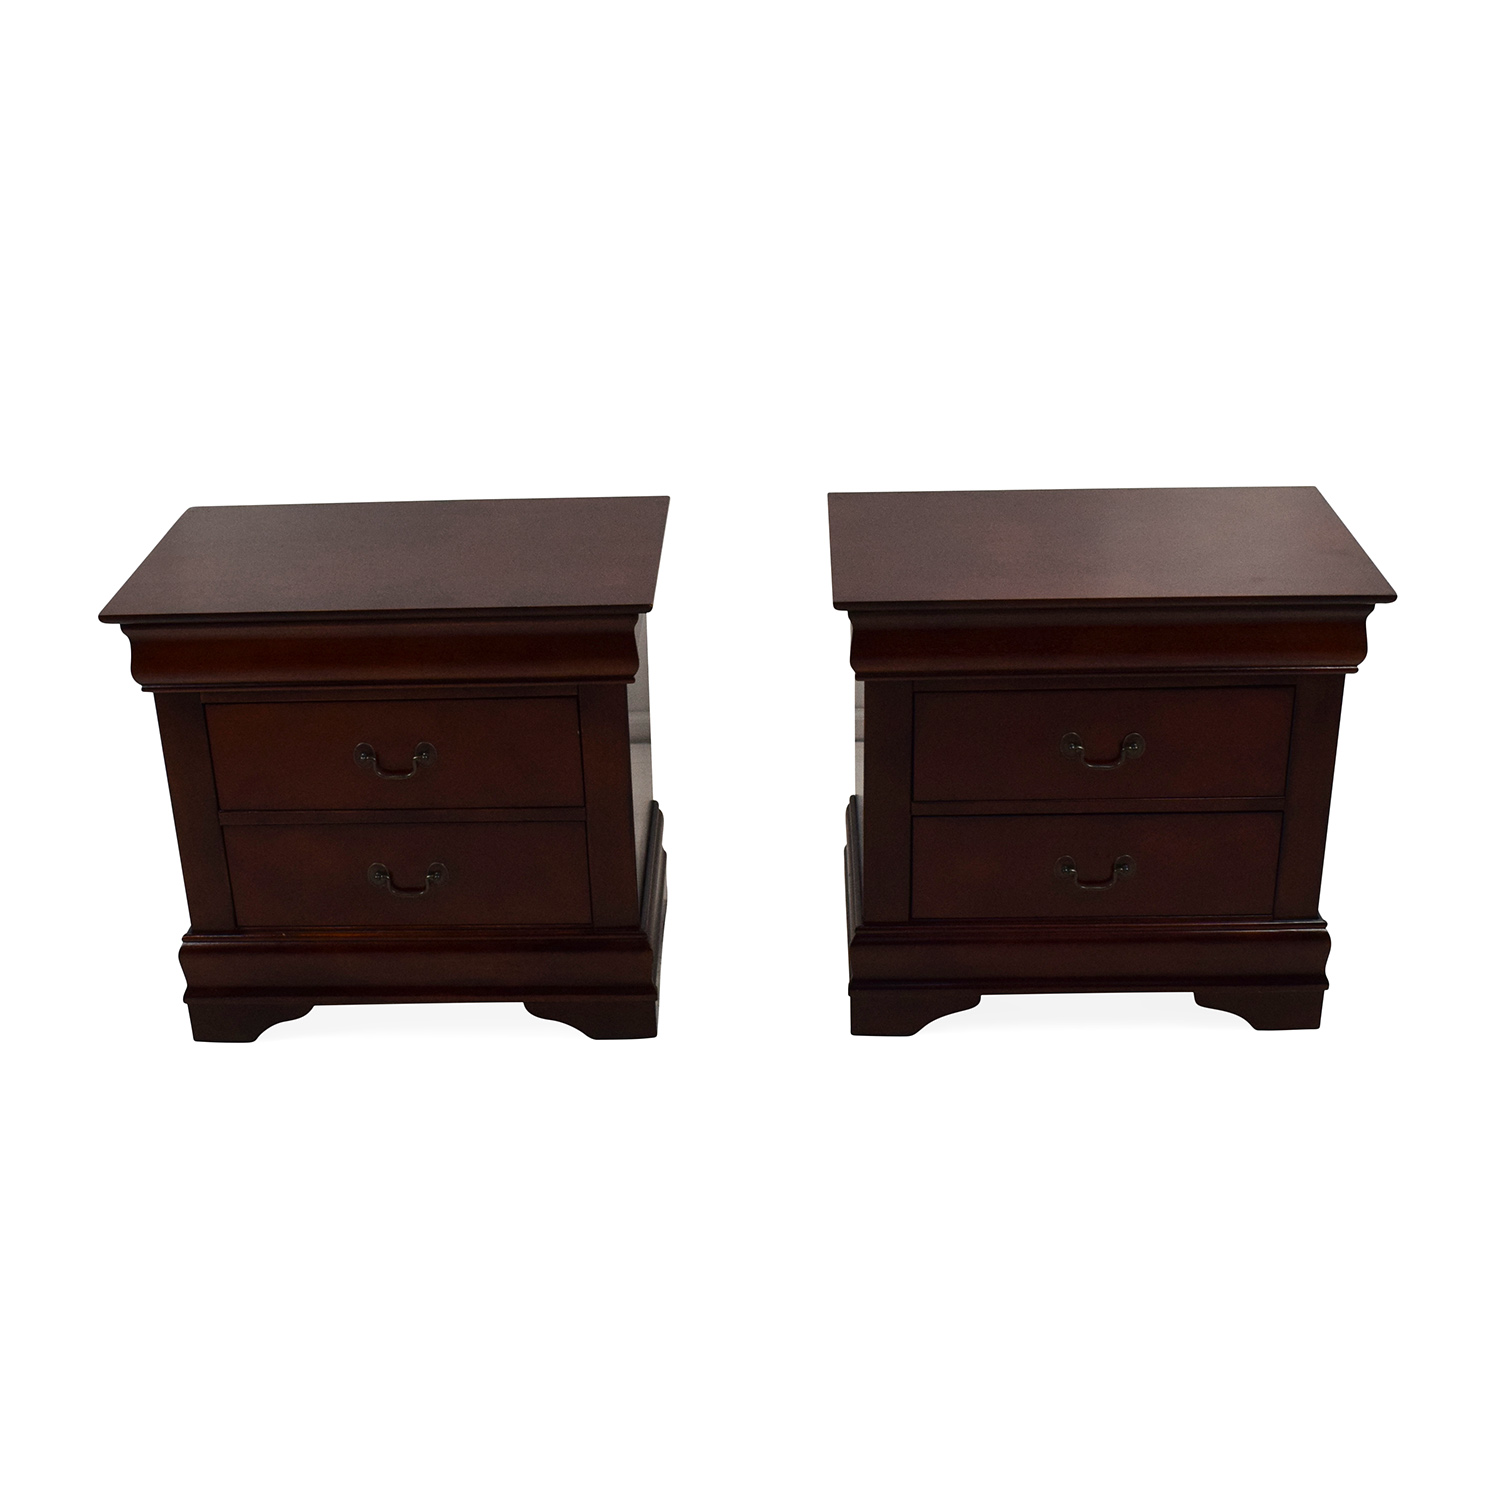 Set of 2 Wooden Nightstands with Drawers